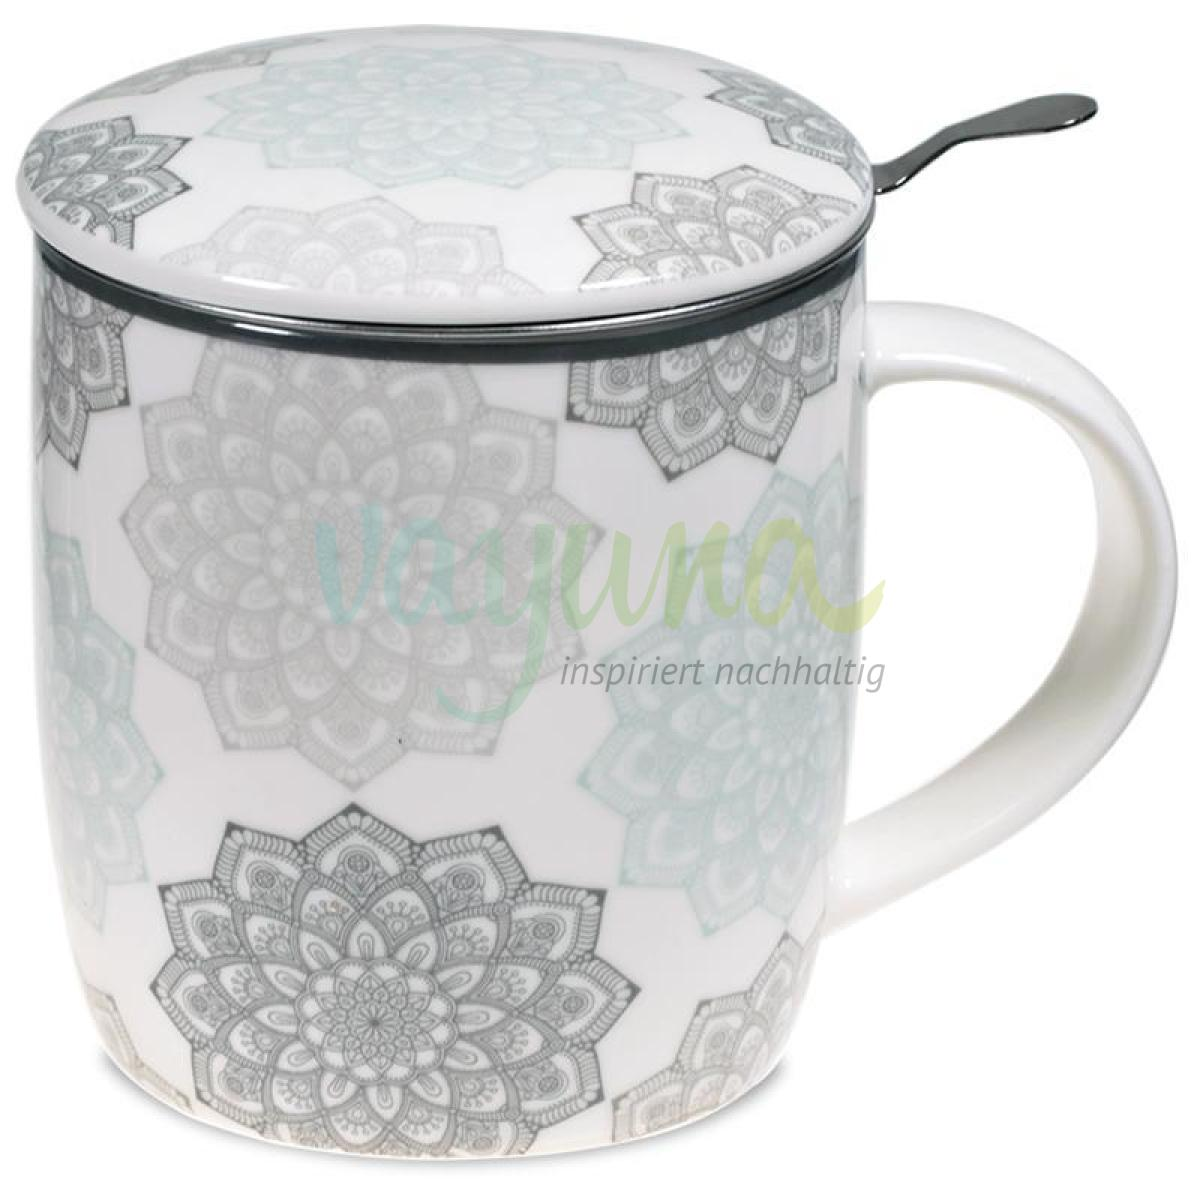 Set Teetasse Mandala grau - 400ml